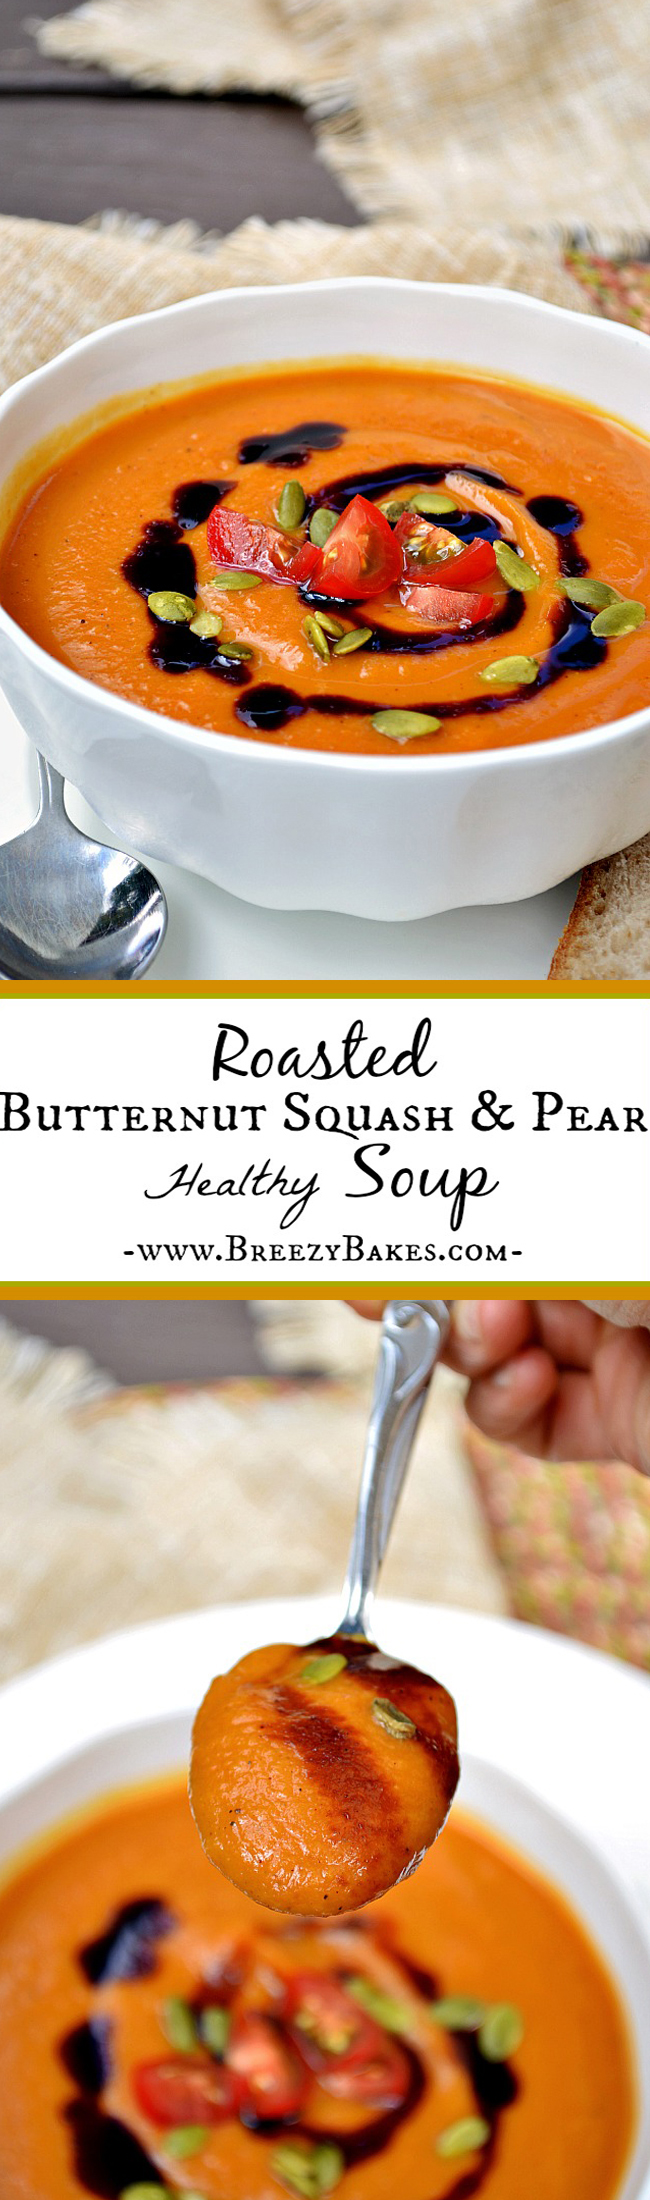 This healthy Roasted Butternut Squash and Pear Soup makes for a comforting and flavorful weeknight meal. It's creamy, robust, and warms you right through. Go ahead and welcome a little fall into your home!